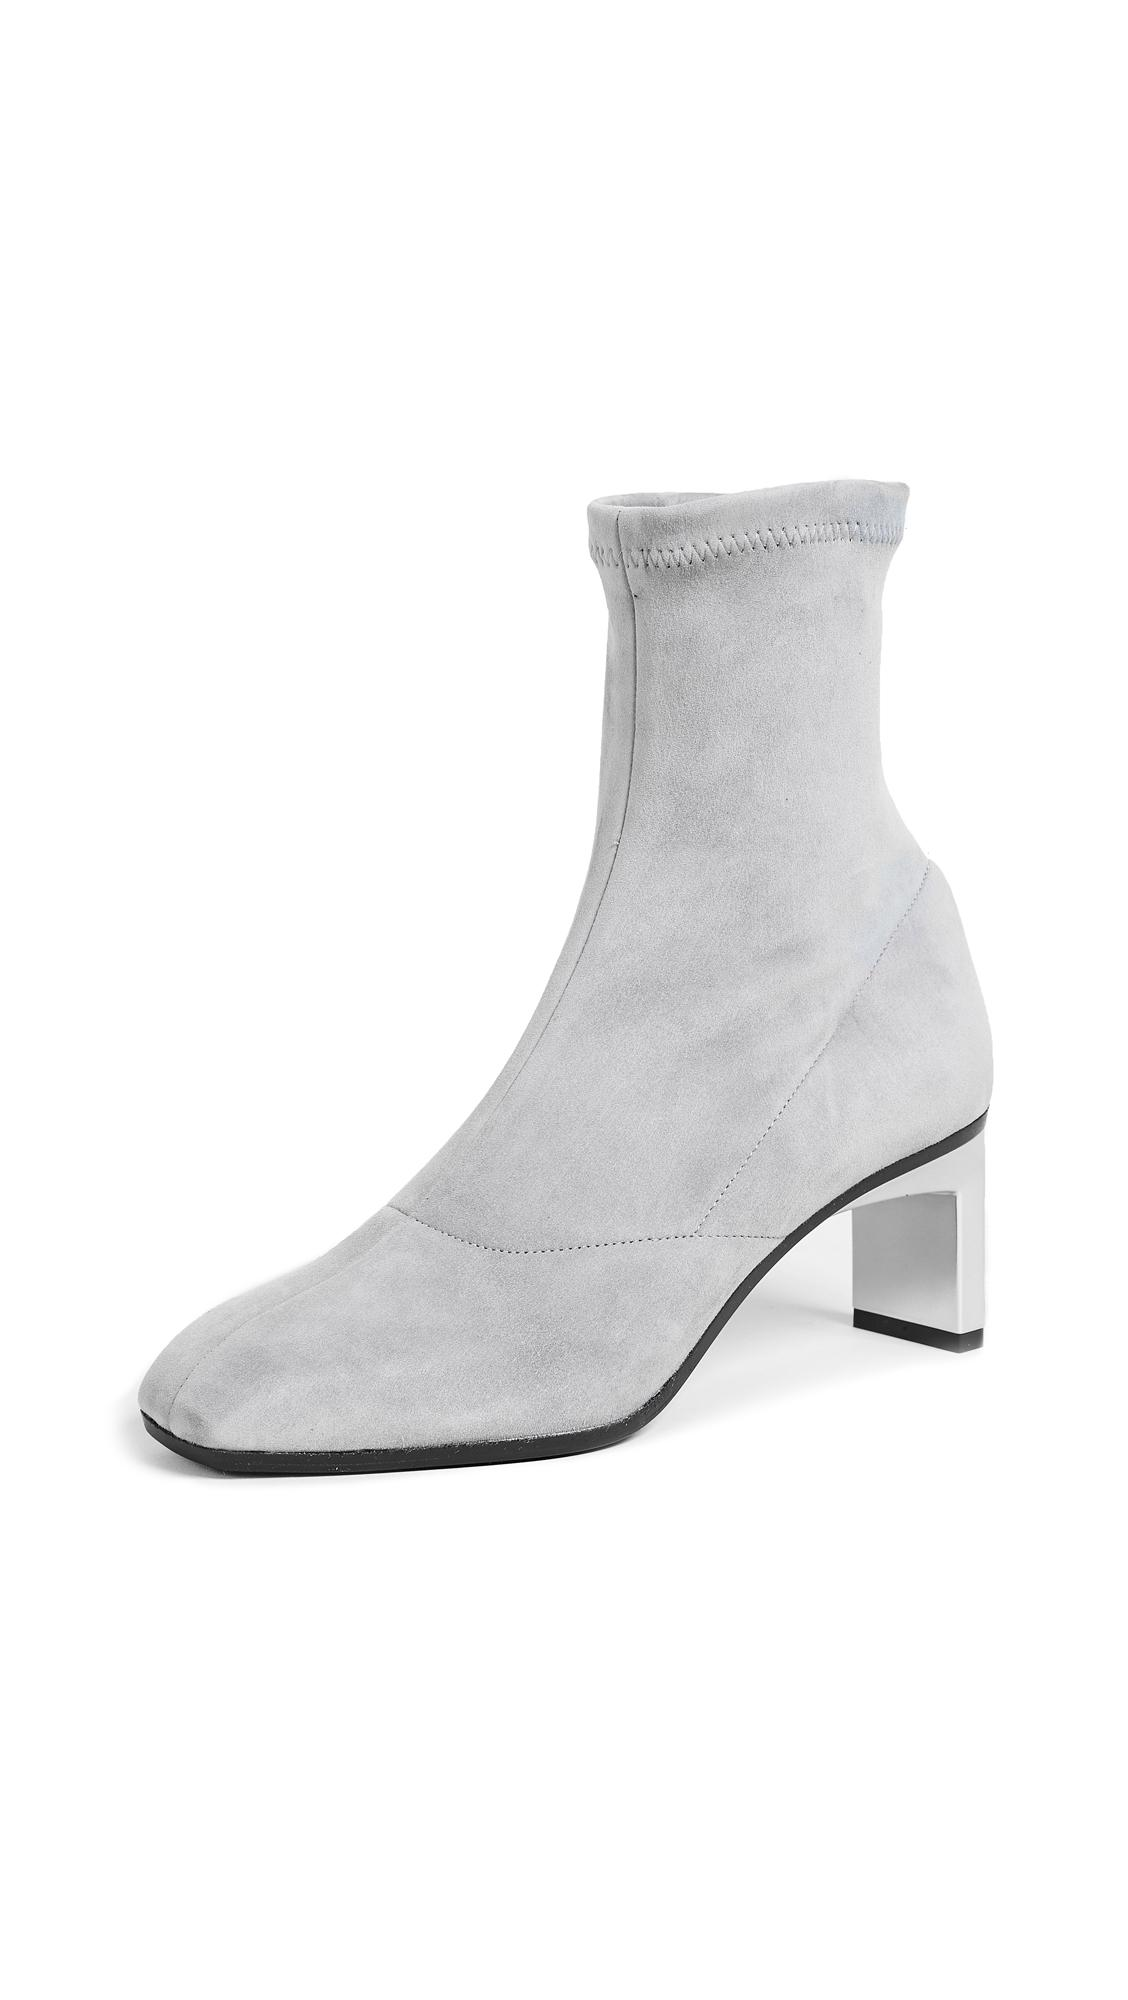 3.1 Phillip Lim Suede Blade Ankle Booties